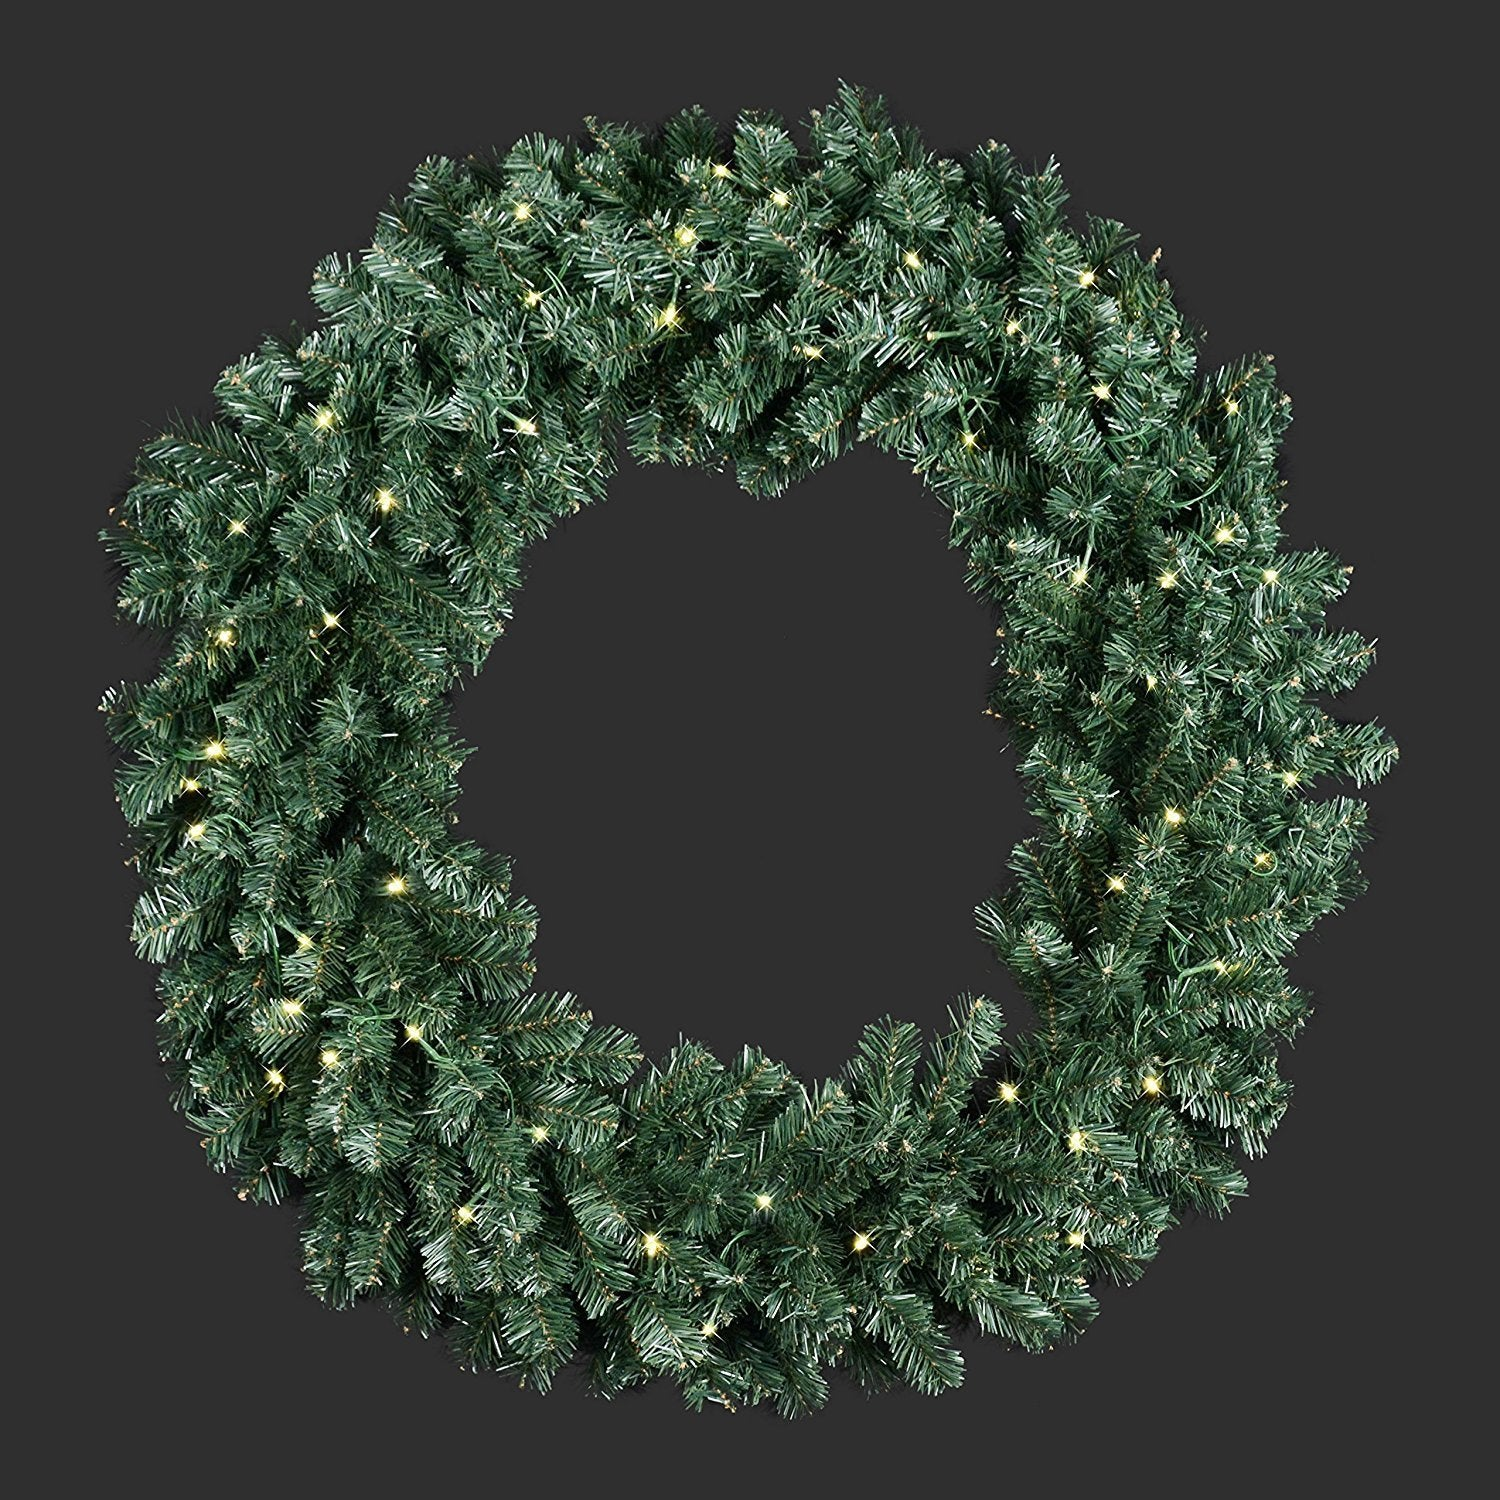 extra large 36 inch diameter balsam pine christmas wreath with 360 tips and 60 led lights battery operated with timer